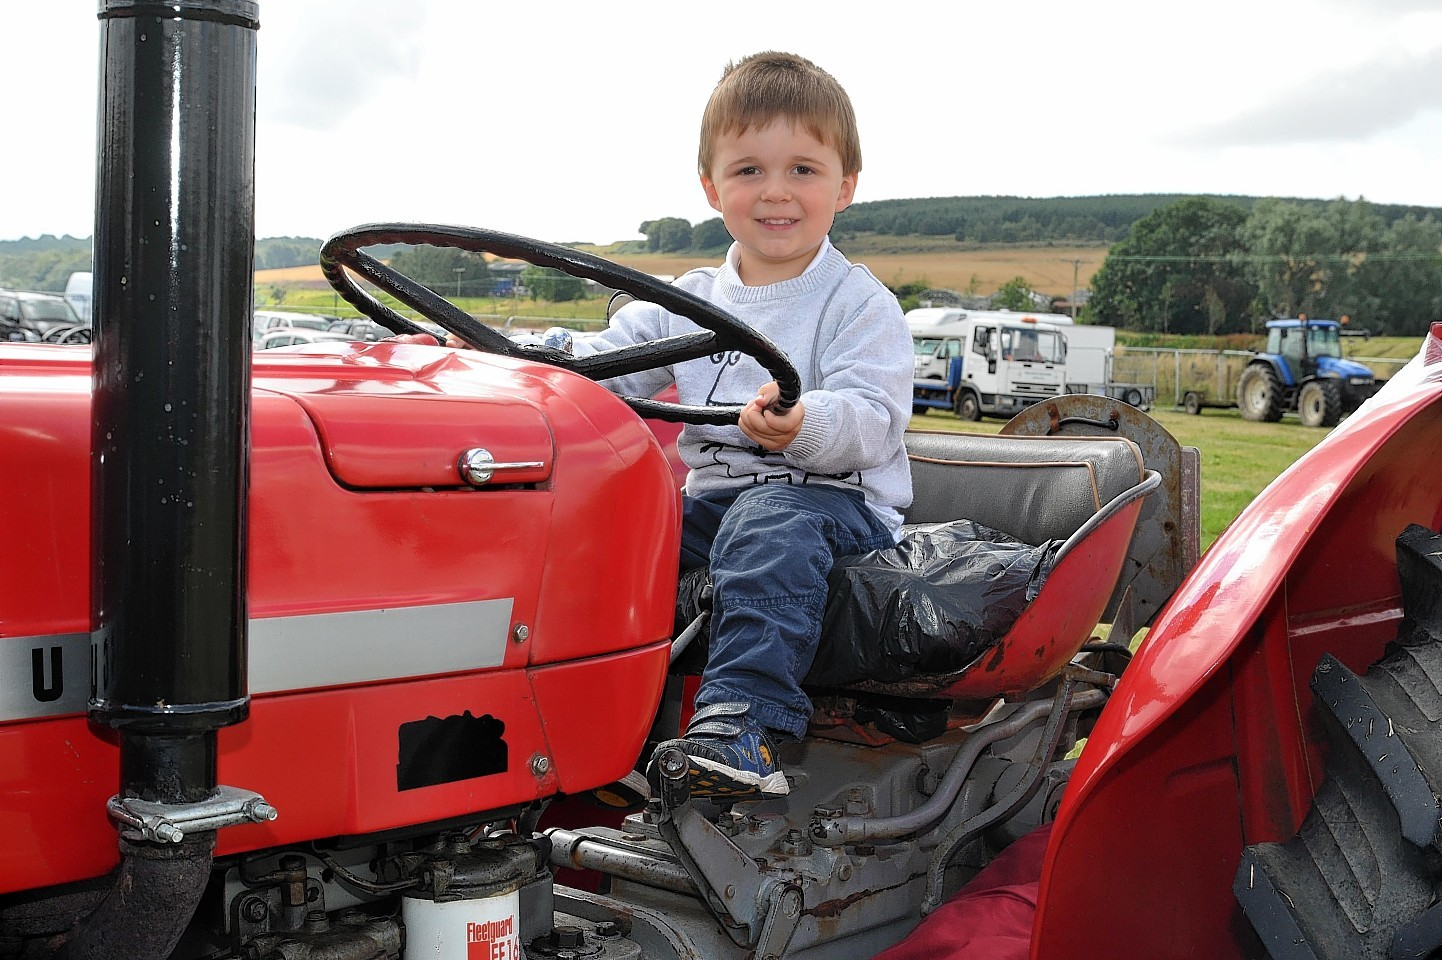 Lewis Donald (3), sitting on a tractor at the Turriff Show